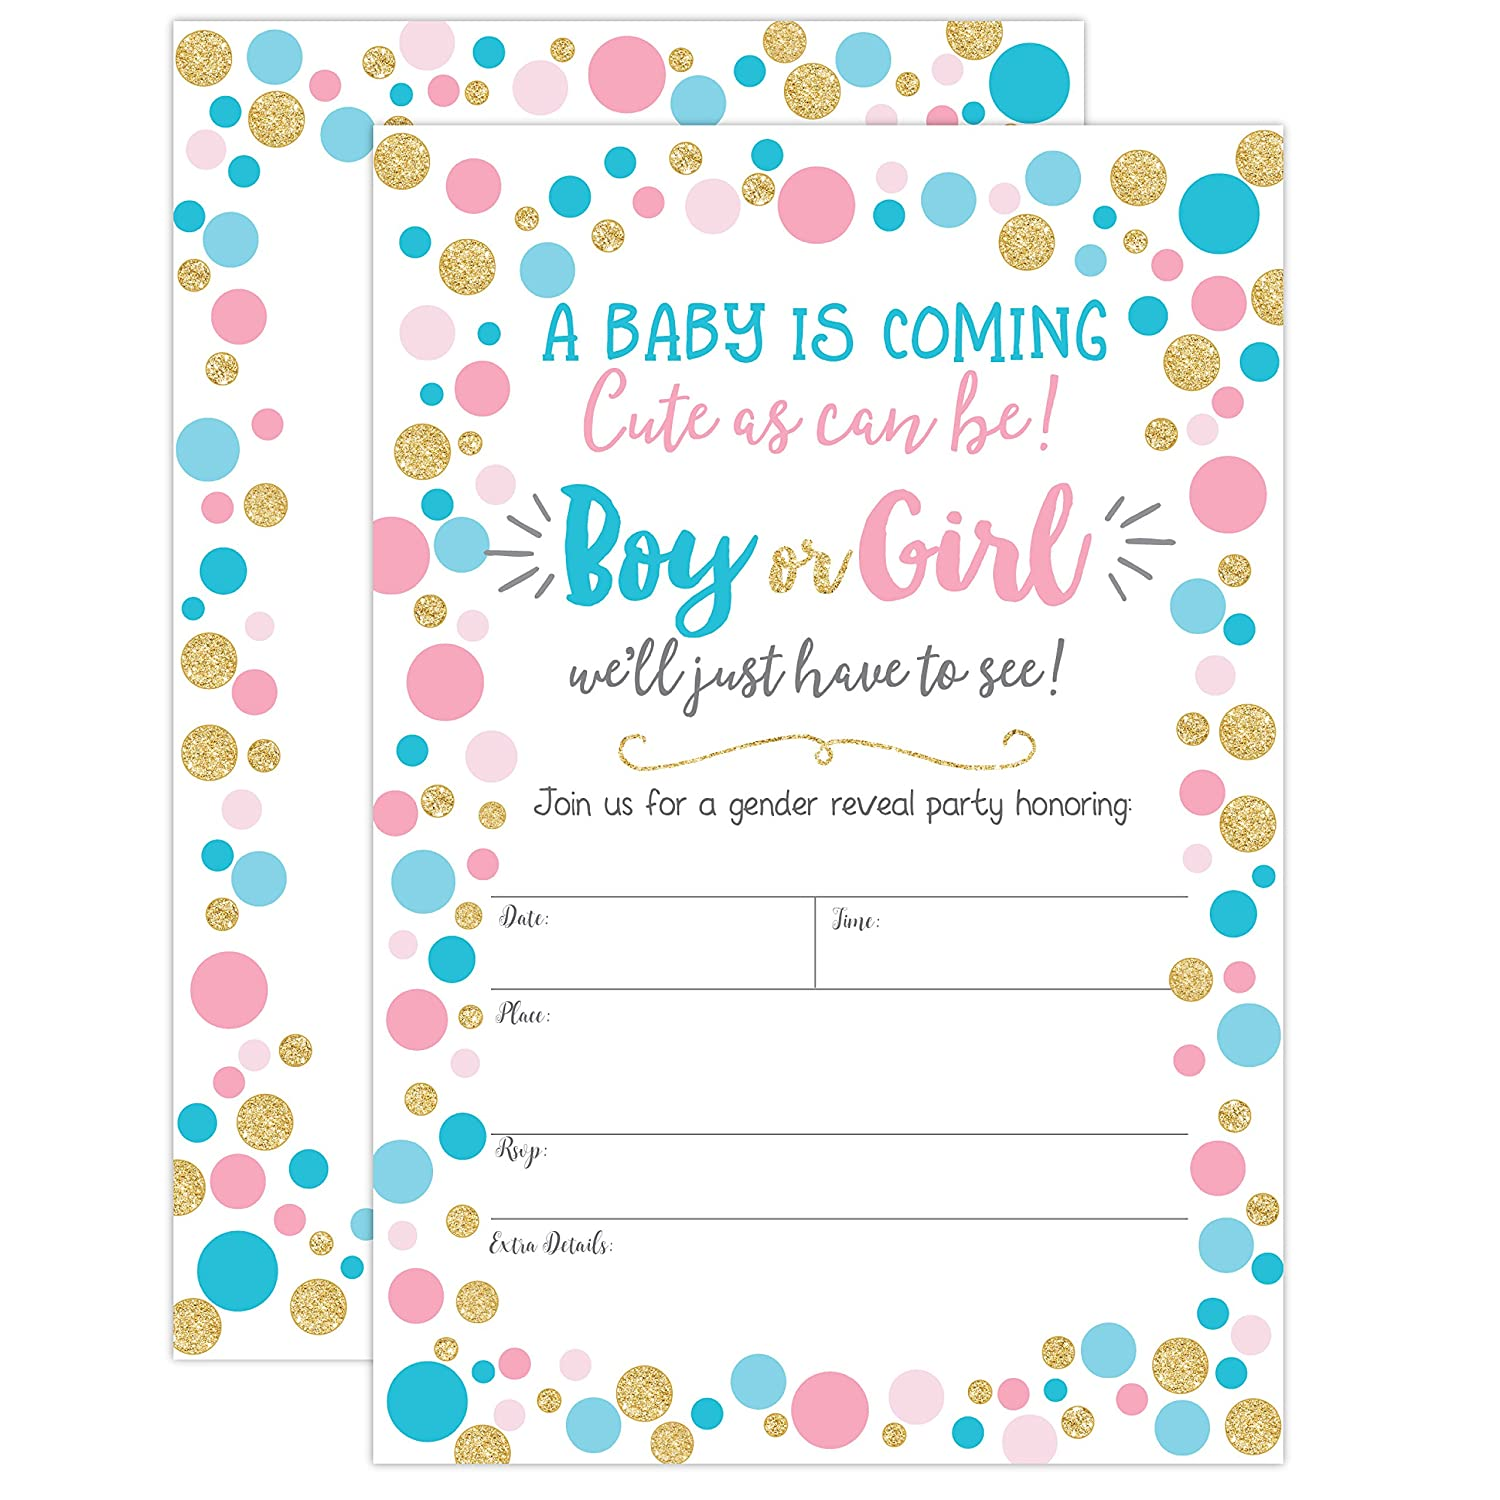 graphic relating to Printable Gender Reveal Invitations identified as Gender Explain Invitation, Gender Clarify Social gathering Invite, Impartial Little one Shower Invitation, Boy or Lady, He or She, 20 Fill within just Invites and Envelopes